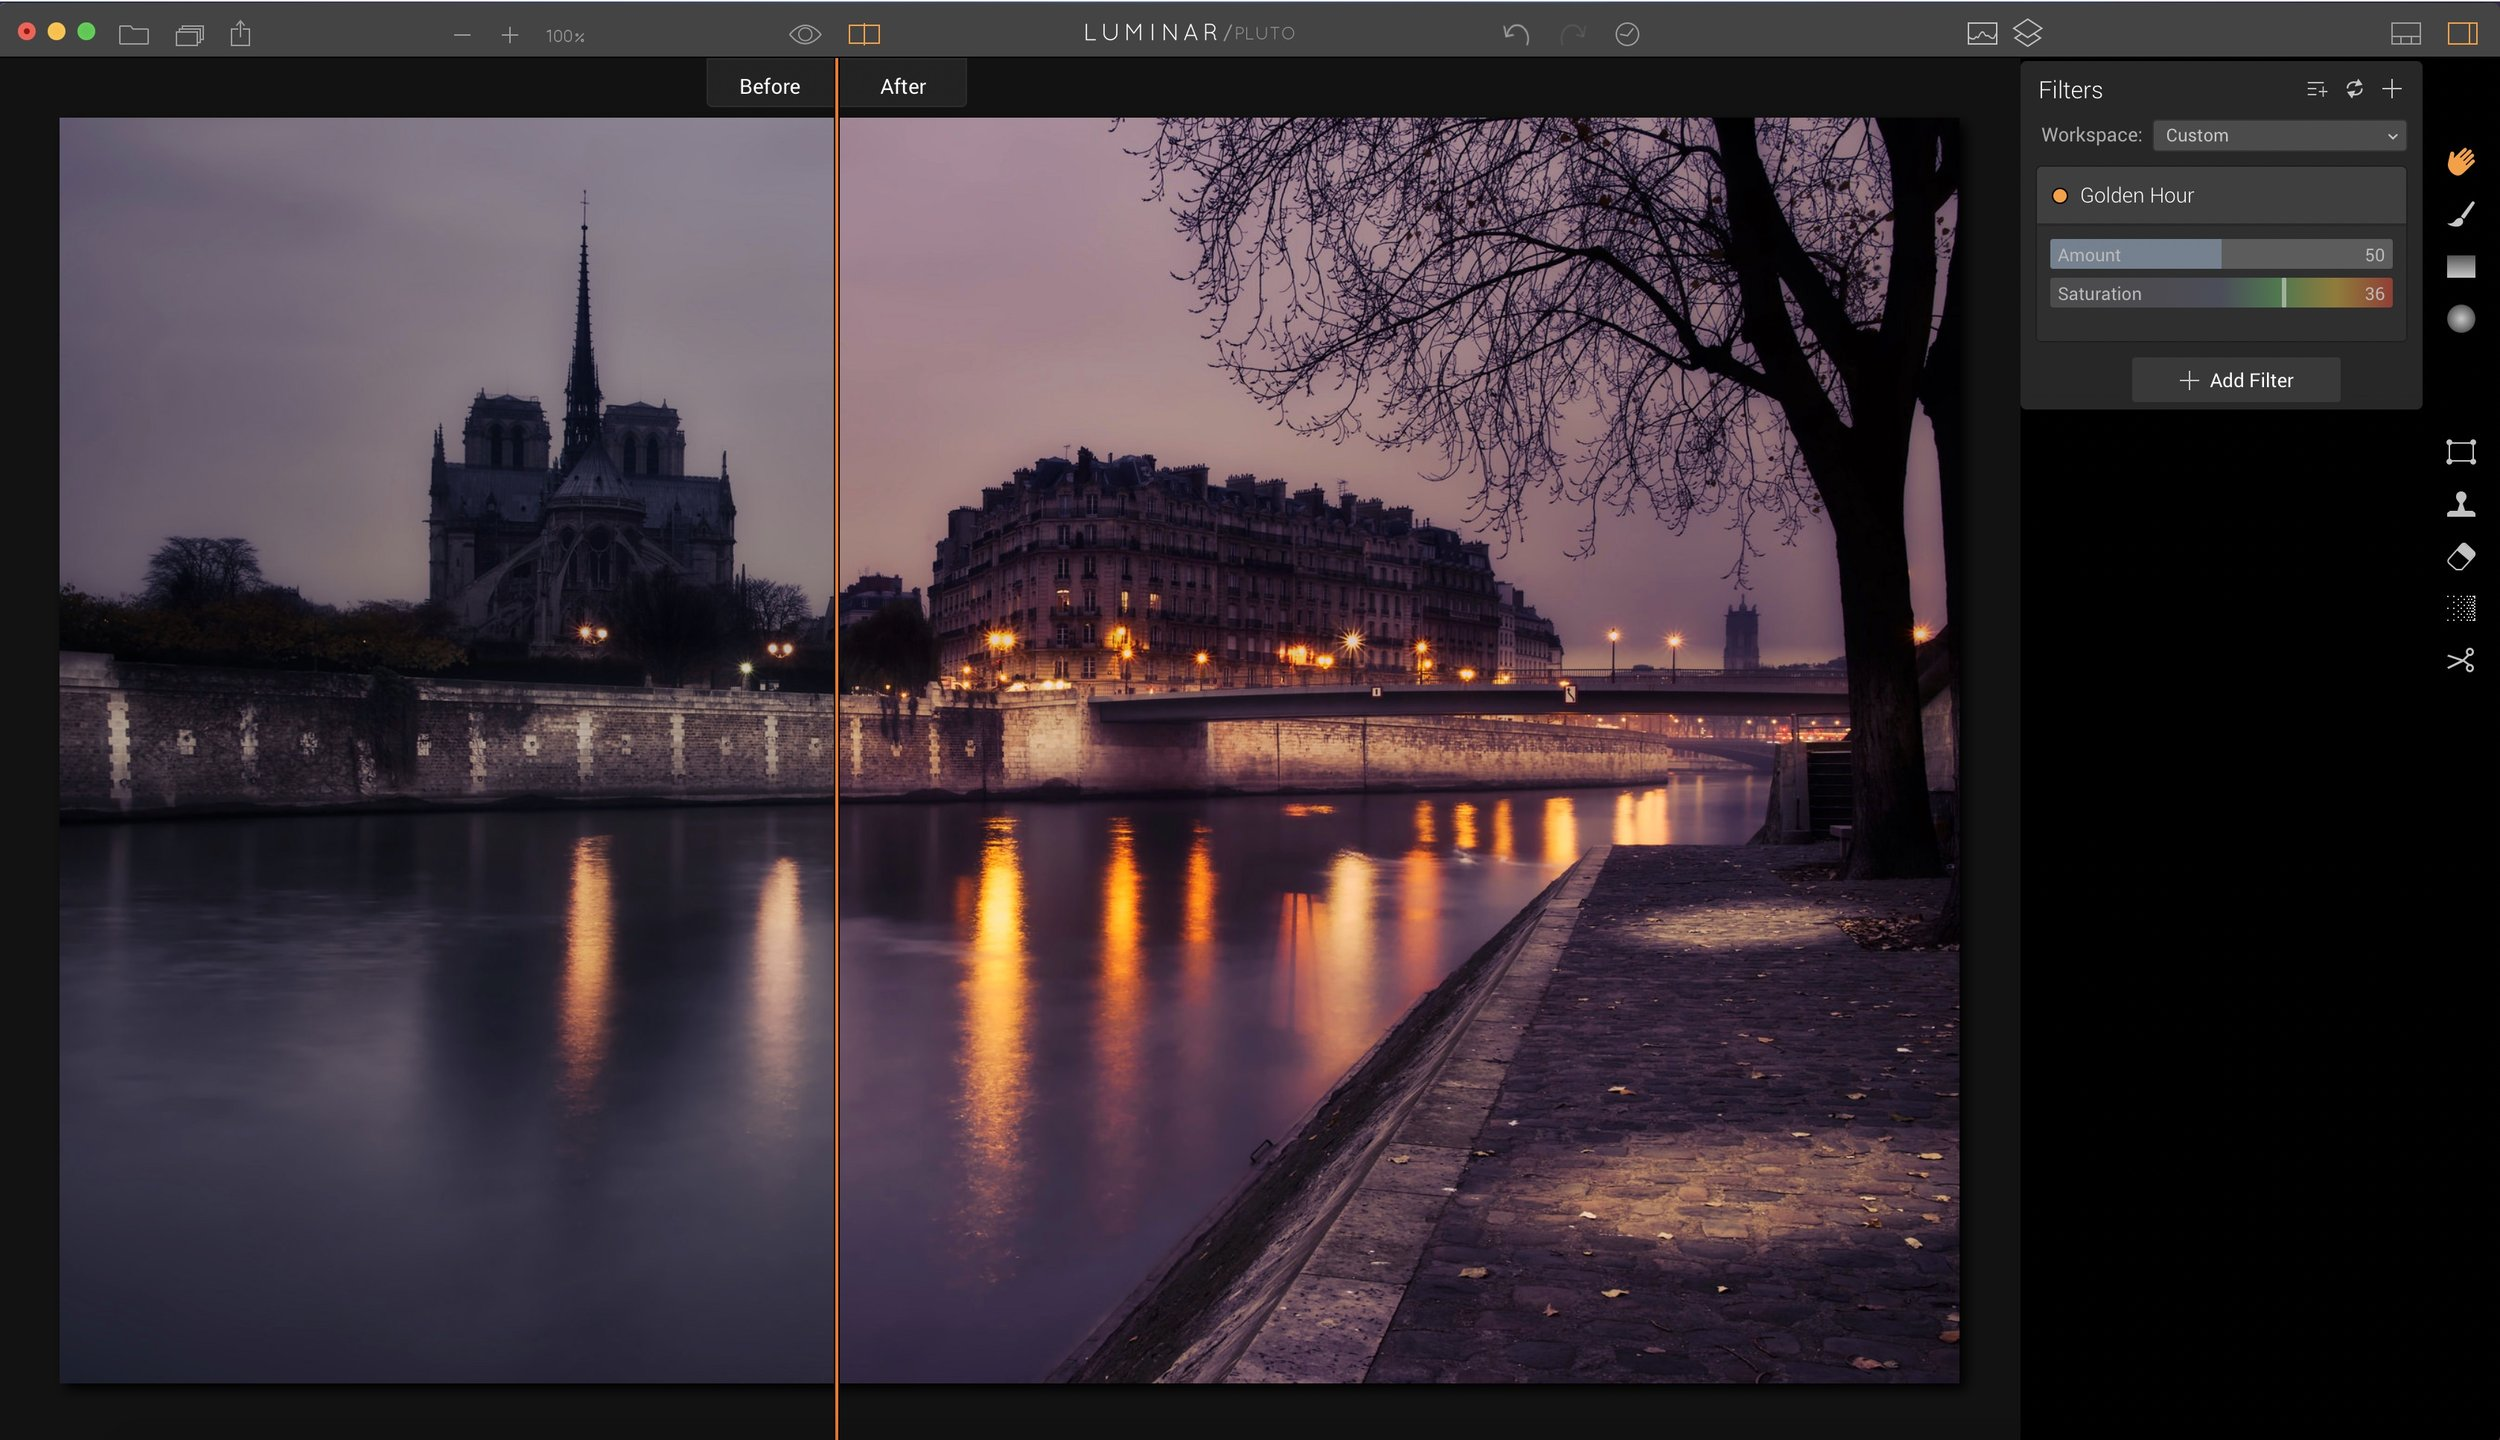 5 Amazing Filters in Luminar (that don't exist in Lightroom